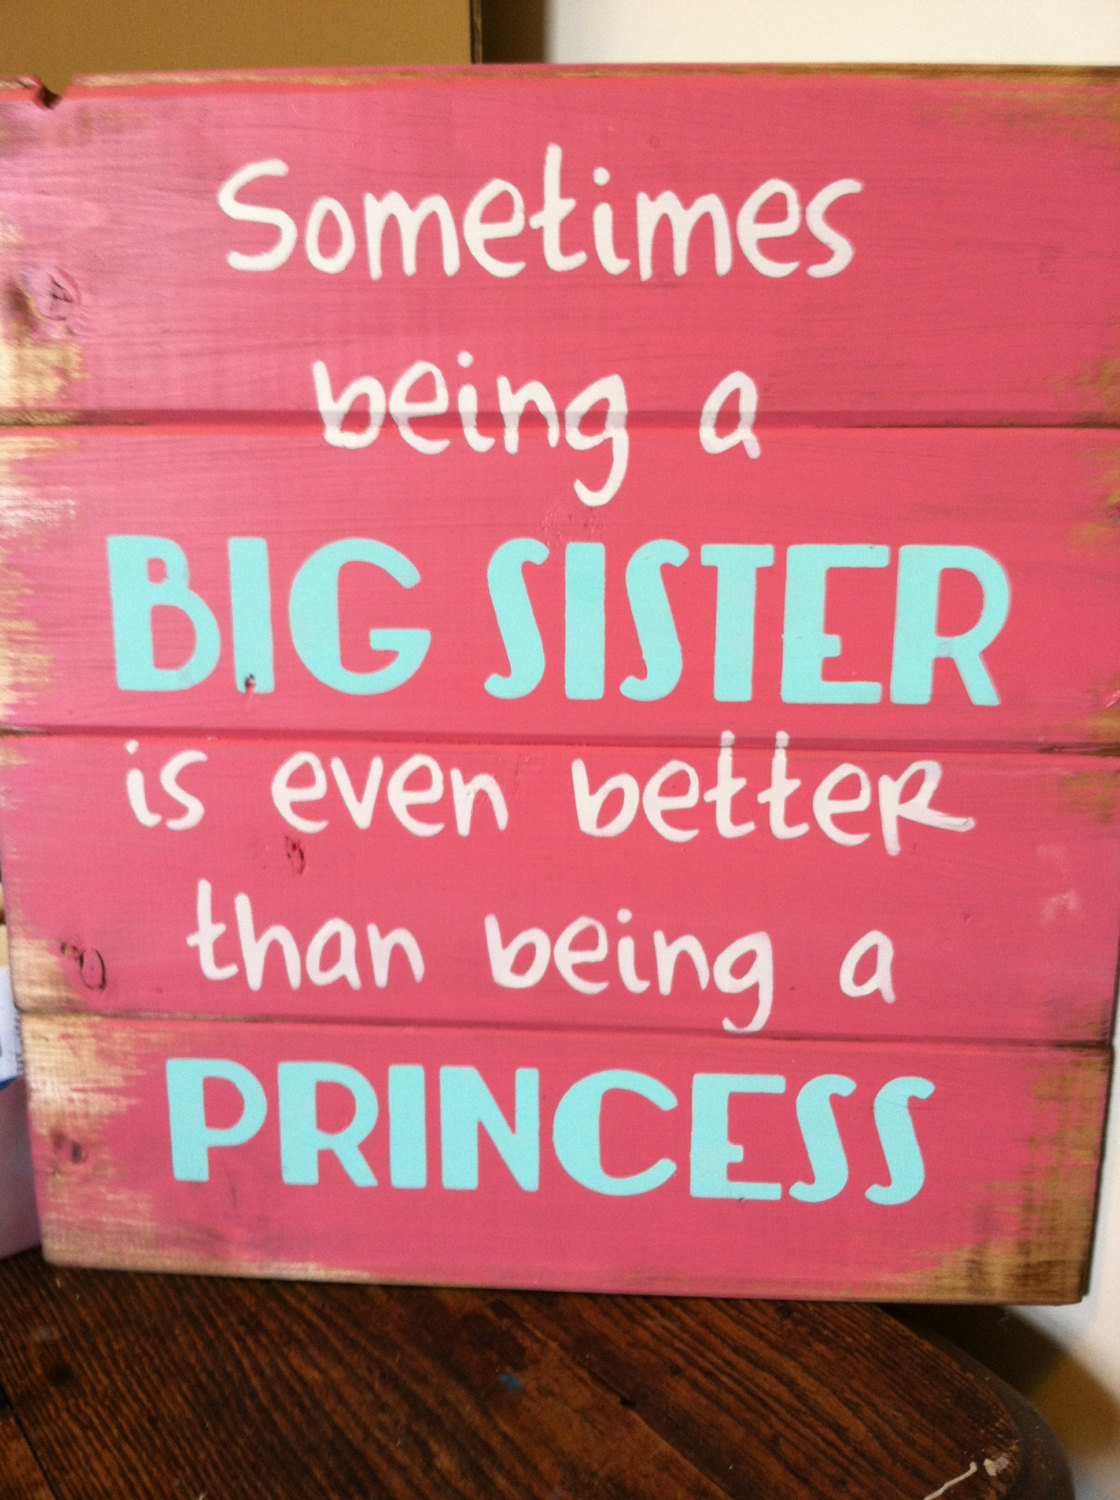 Big Sister To Brother Quotes: Big Sister Quotes And Sayings. QuotesGram